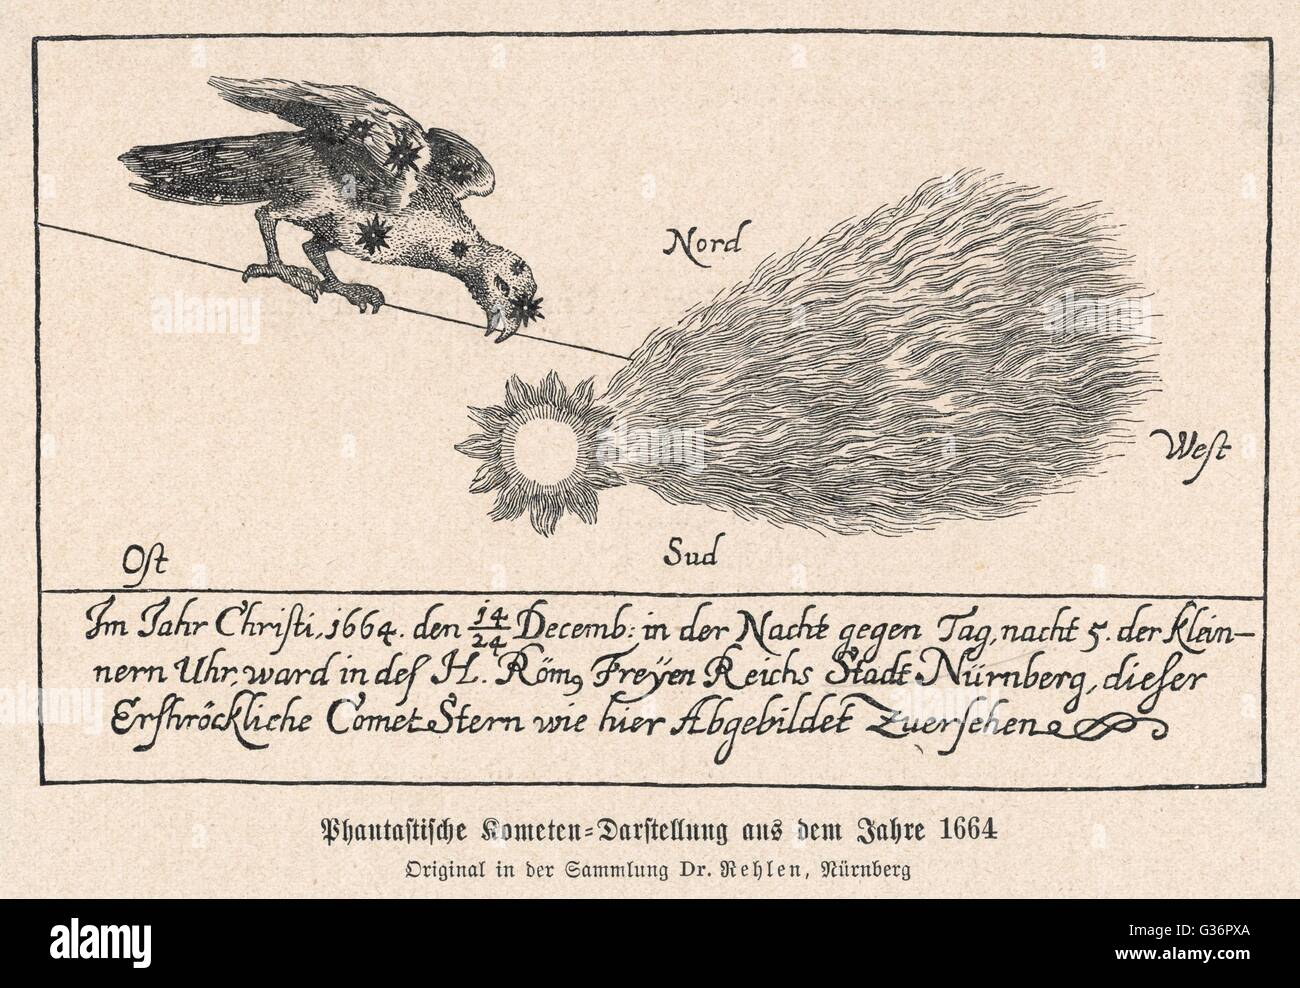 Depiction of a comet seen from Nuremberg, Germany, every night  from 14 to 24 December 1664.        Date: December - Stock Image